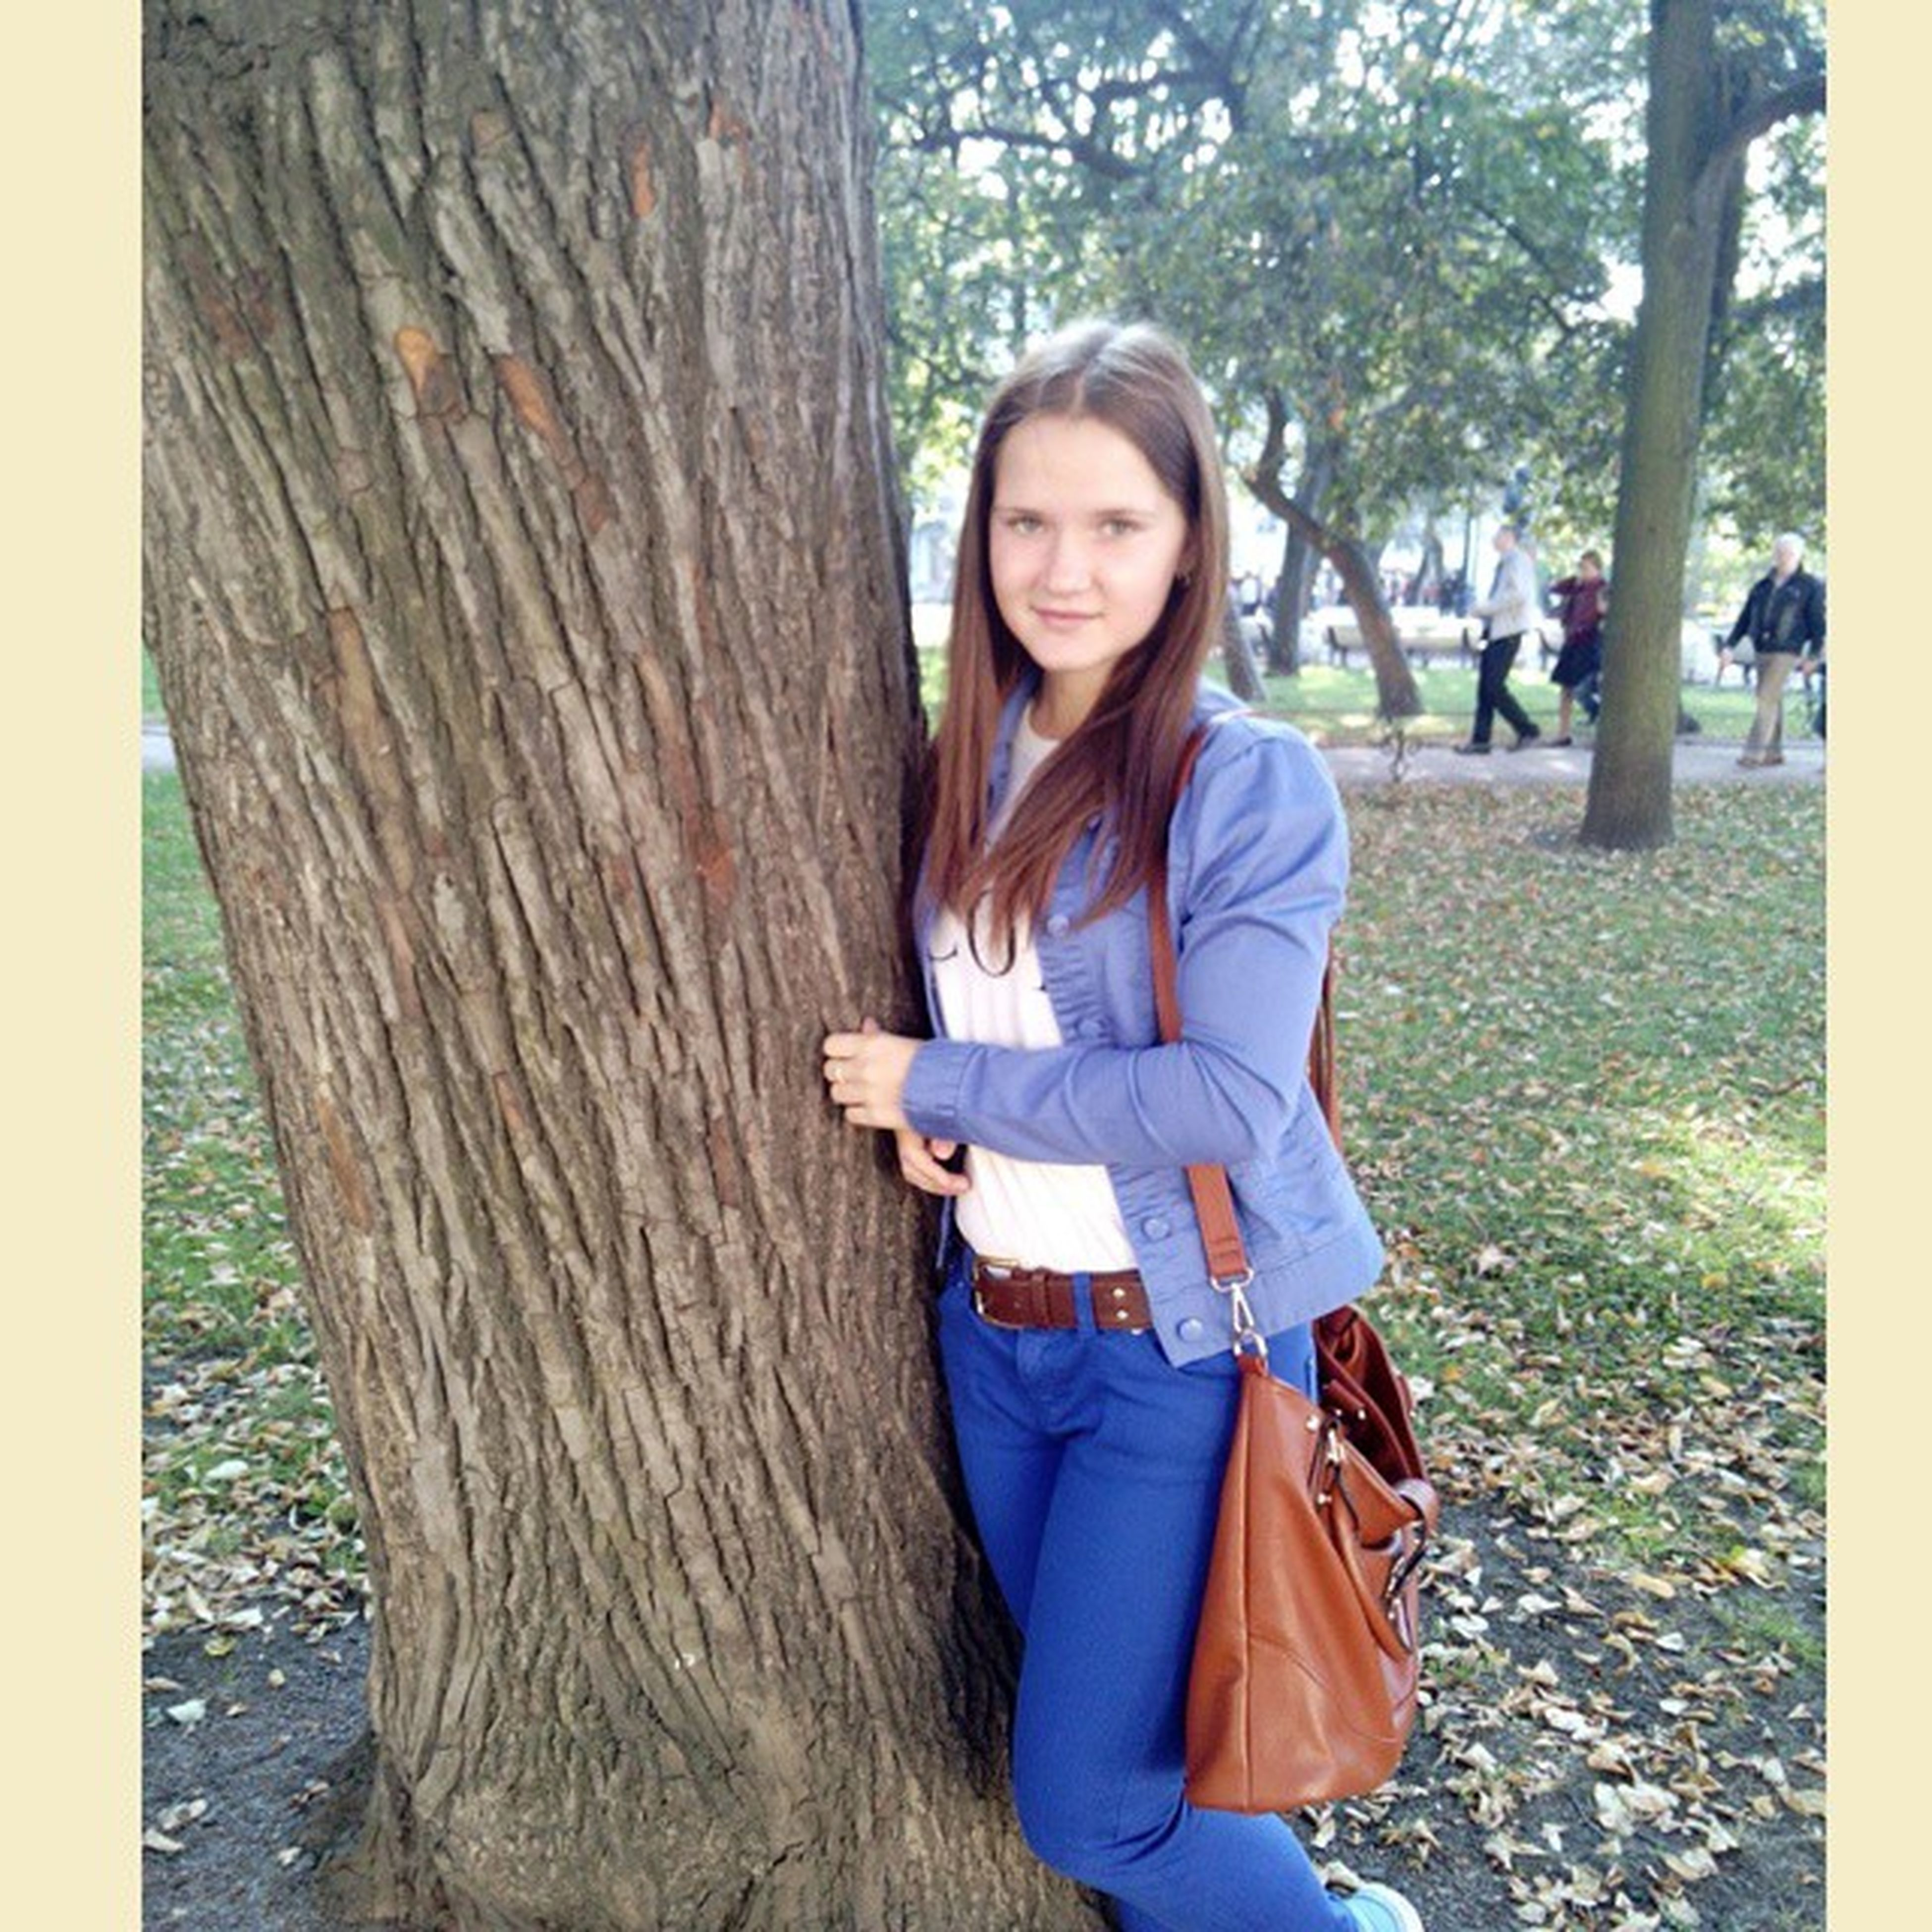 person, looking at camera, portrait, casual clothing, lifestyles, front view, smiling, tree, leisure activity, happiness, young adult, young women, park - man made space, long hair, standing, girls, childhood